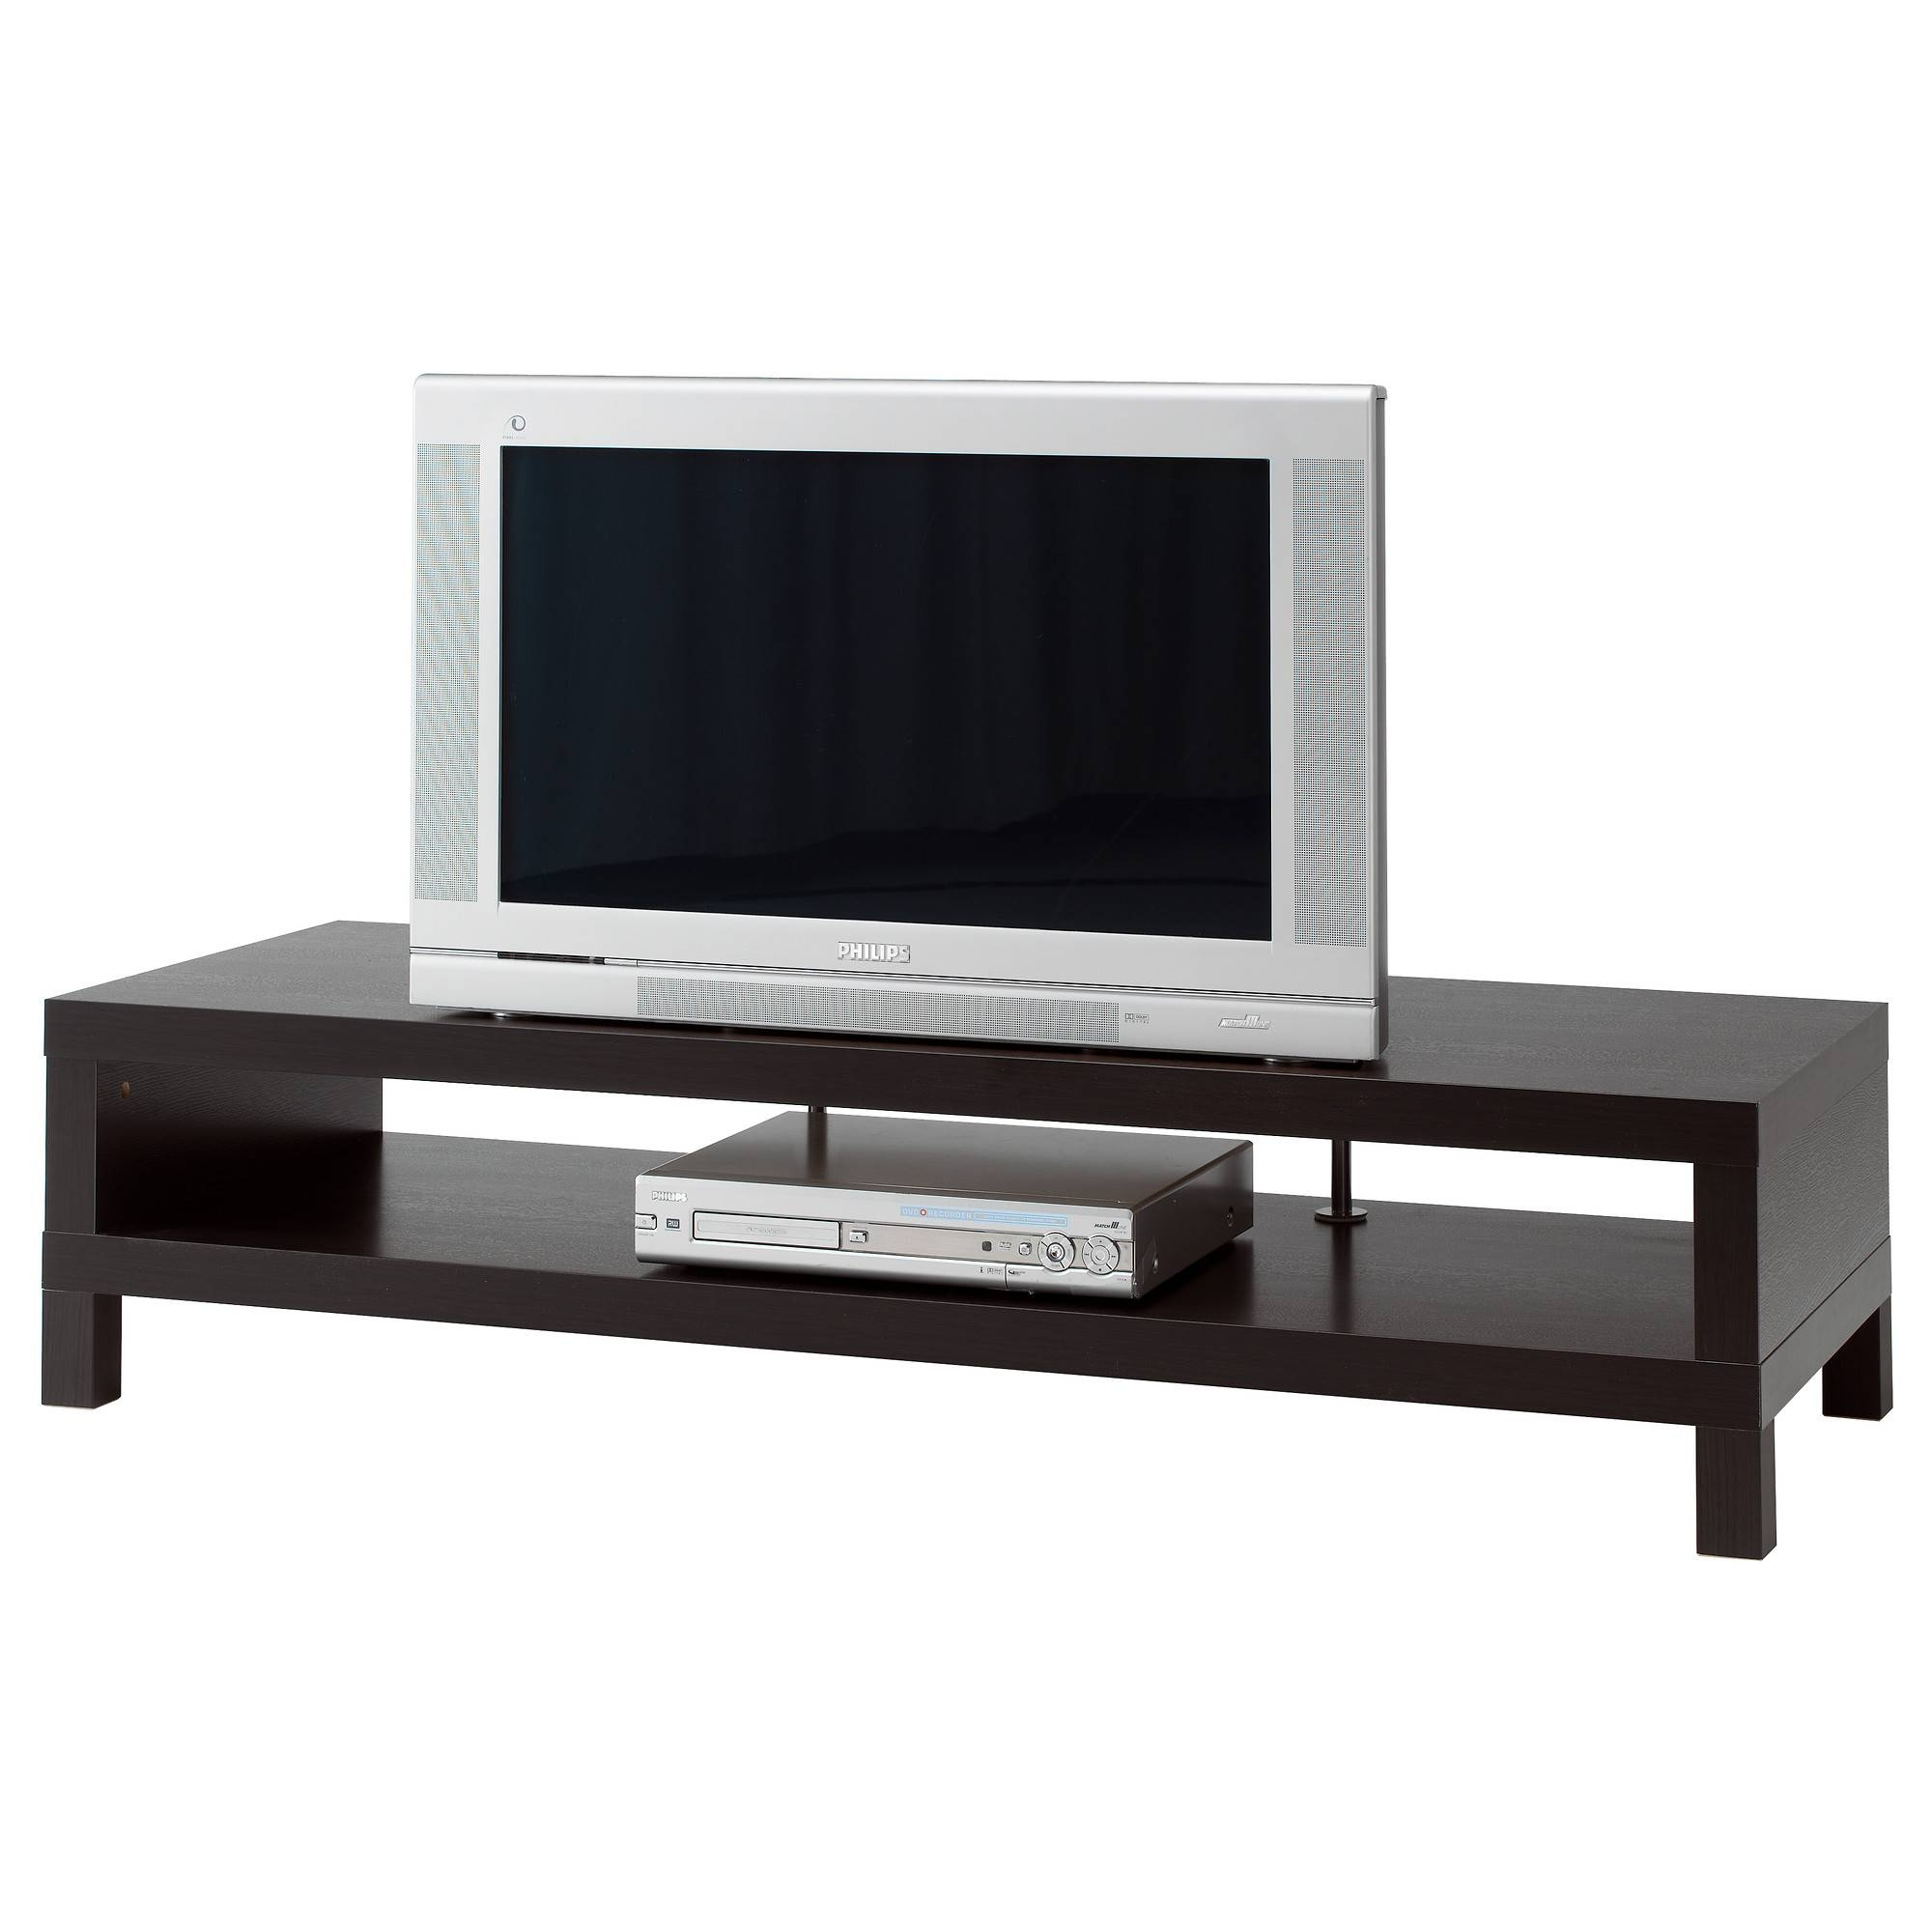 Tv Media Furniture – Tv Stands, Cabinets & Media Storage - Ikea regarding Bench Tv Stands (Image 11 of 15)